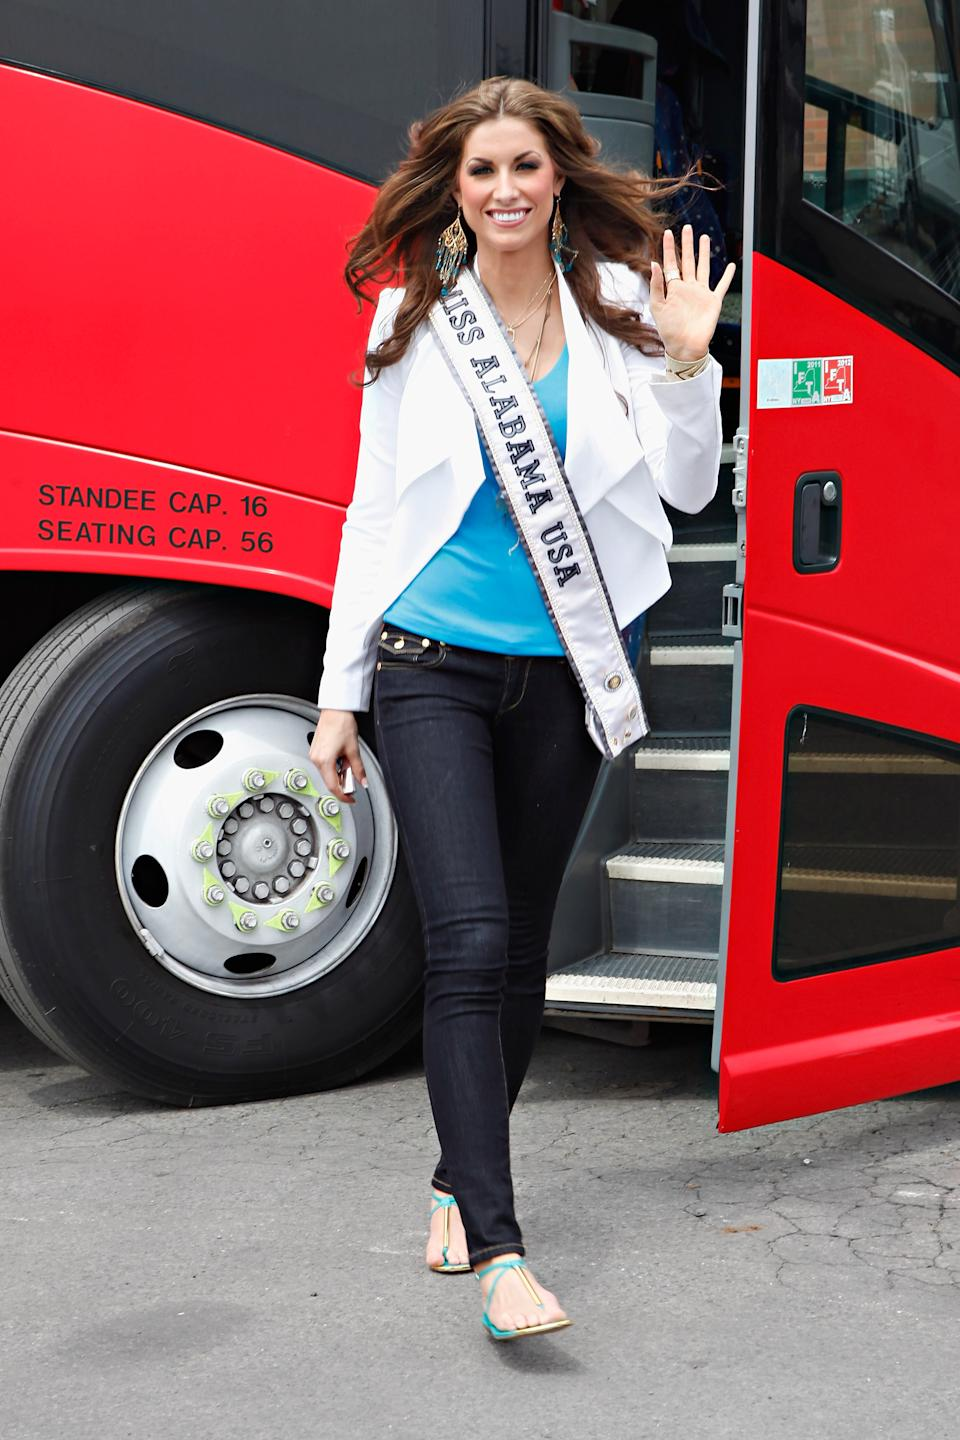 Miss Alabama USA Katherine Webb exits a sightseeing bus on May 8, 2012 in New York City. (Photo by Cindy Ord/Getty Images)